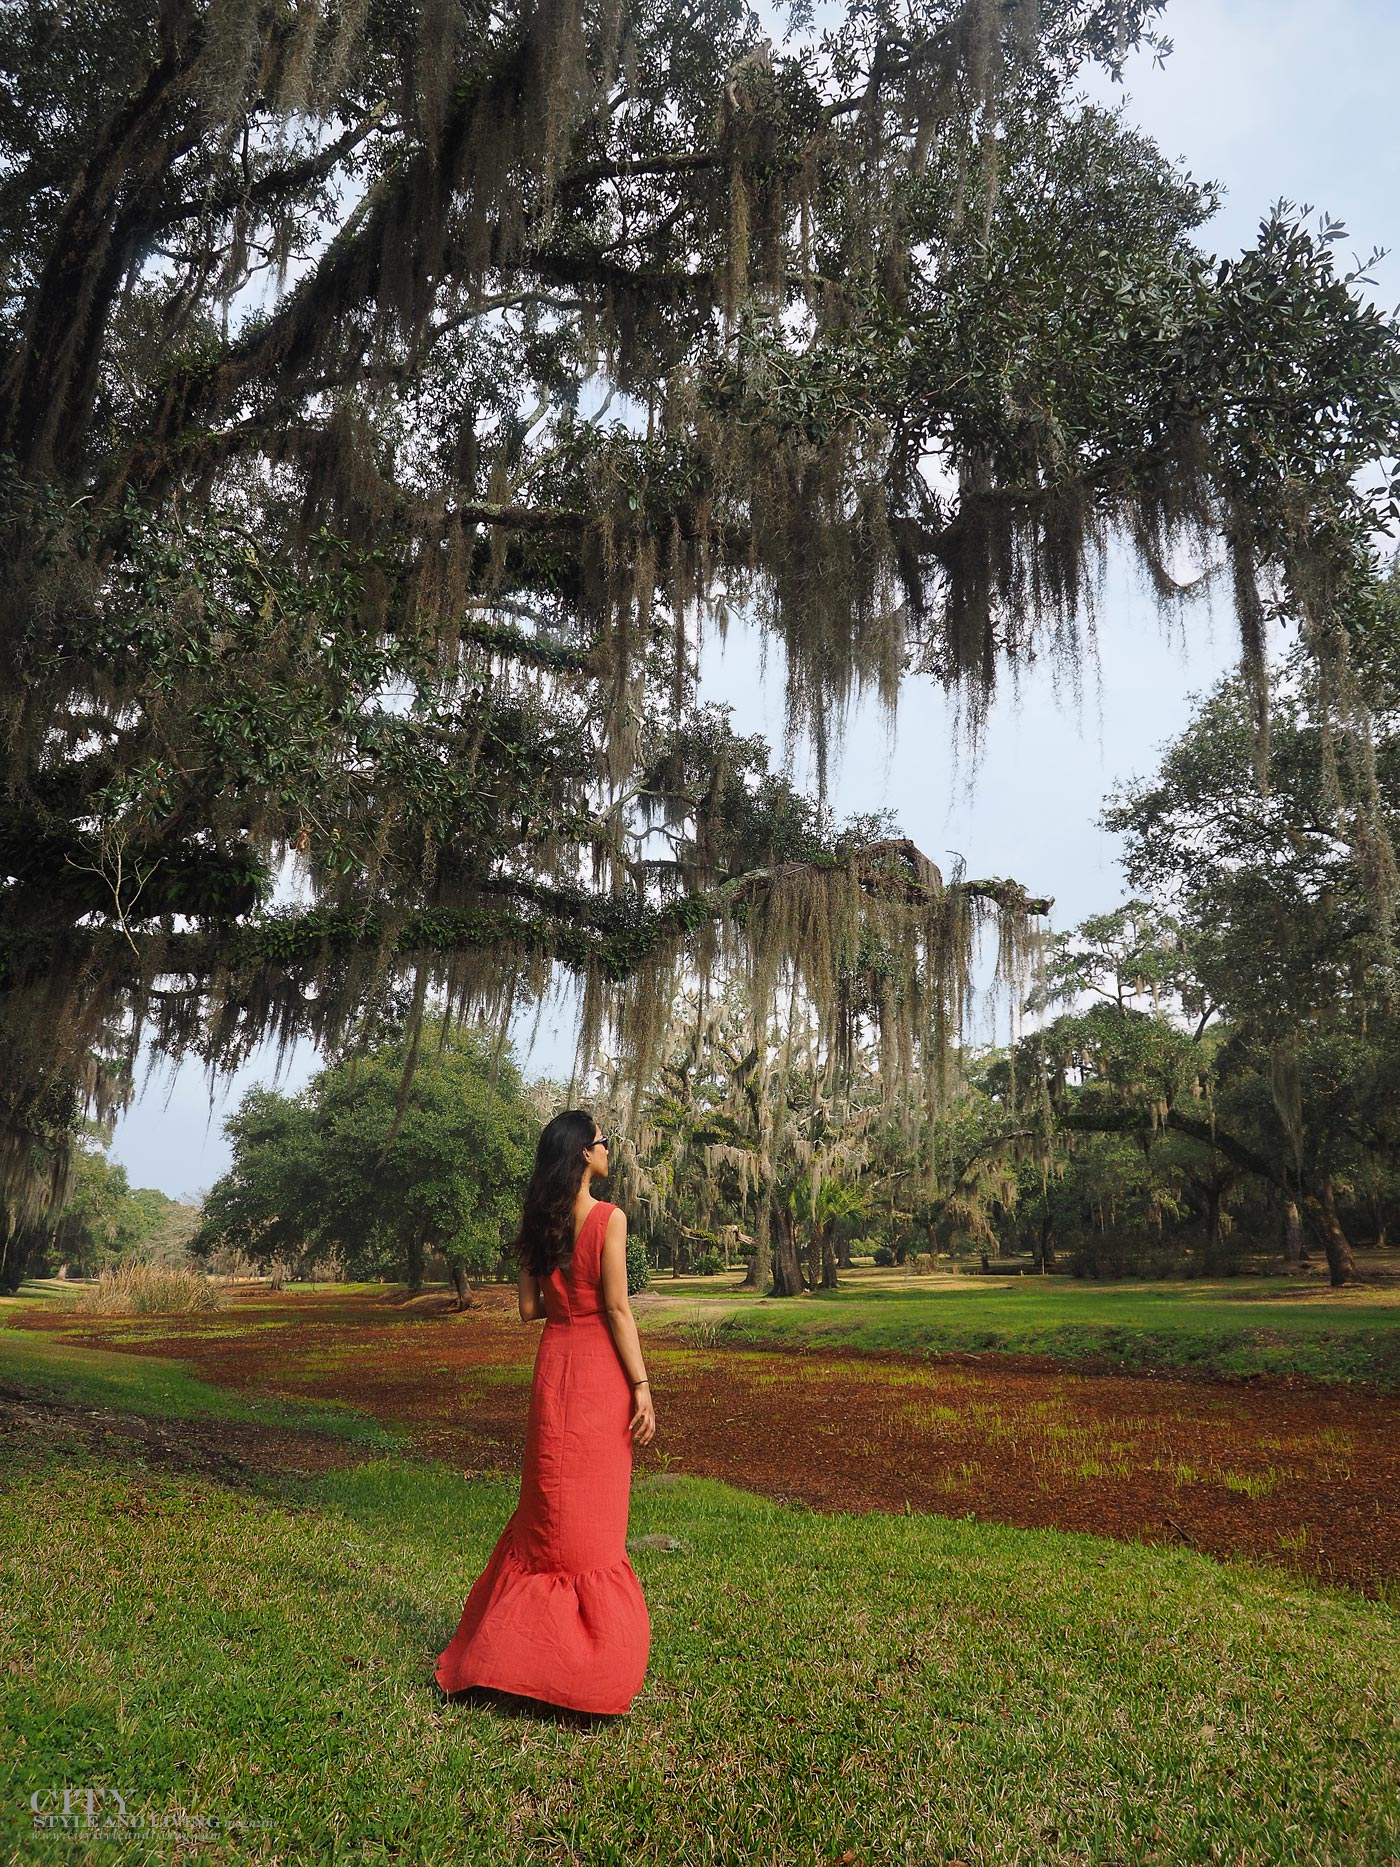 City style and living magazine The Editors Notebook style fashion blogger Shivana Maharaj New Orleans French Quarter Orange Dress Jungle Gardens Avery Island Swamp